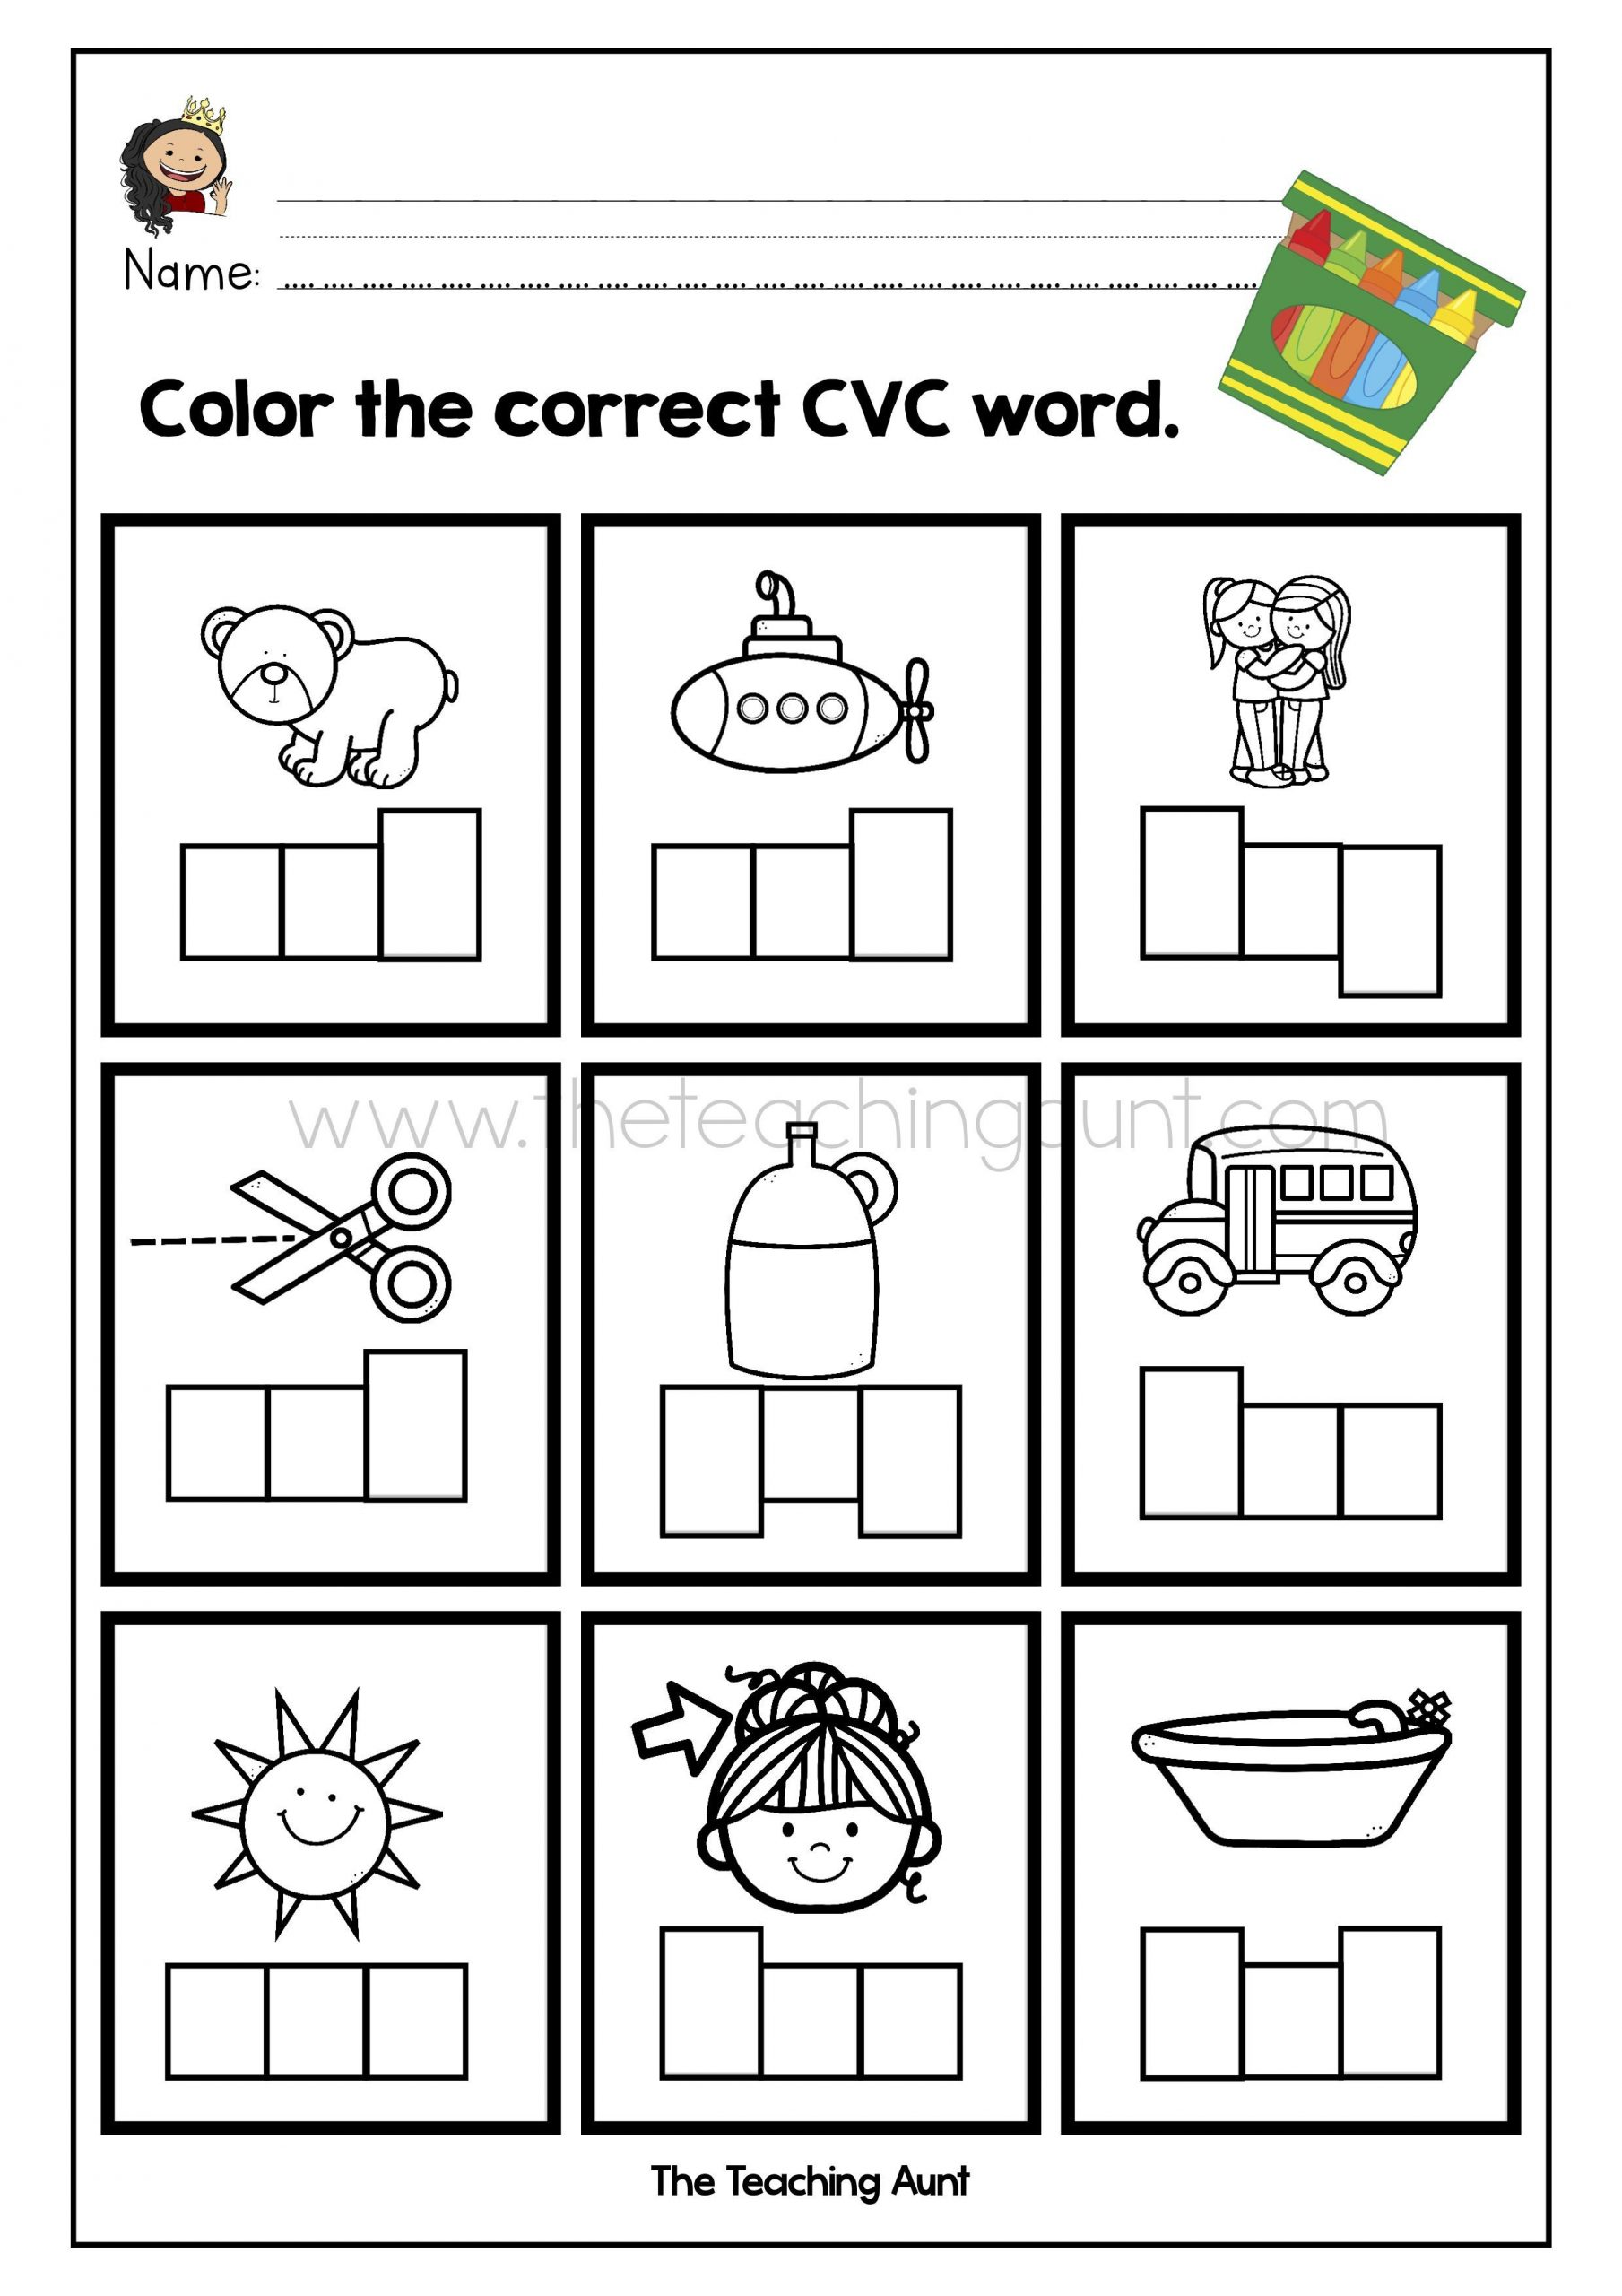 Free Printable Cvc Worksheets Pin On Free Preschool Flashcards and Worksheets